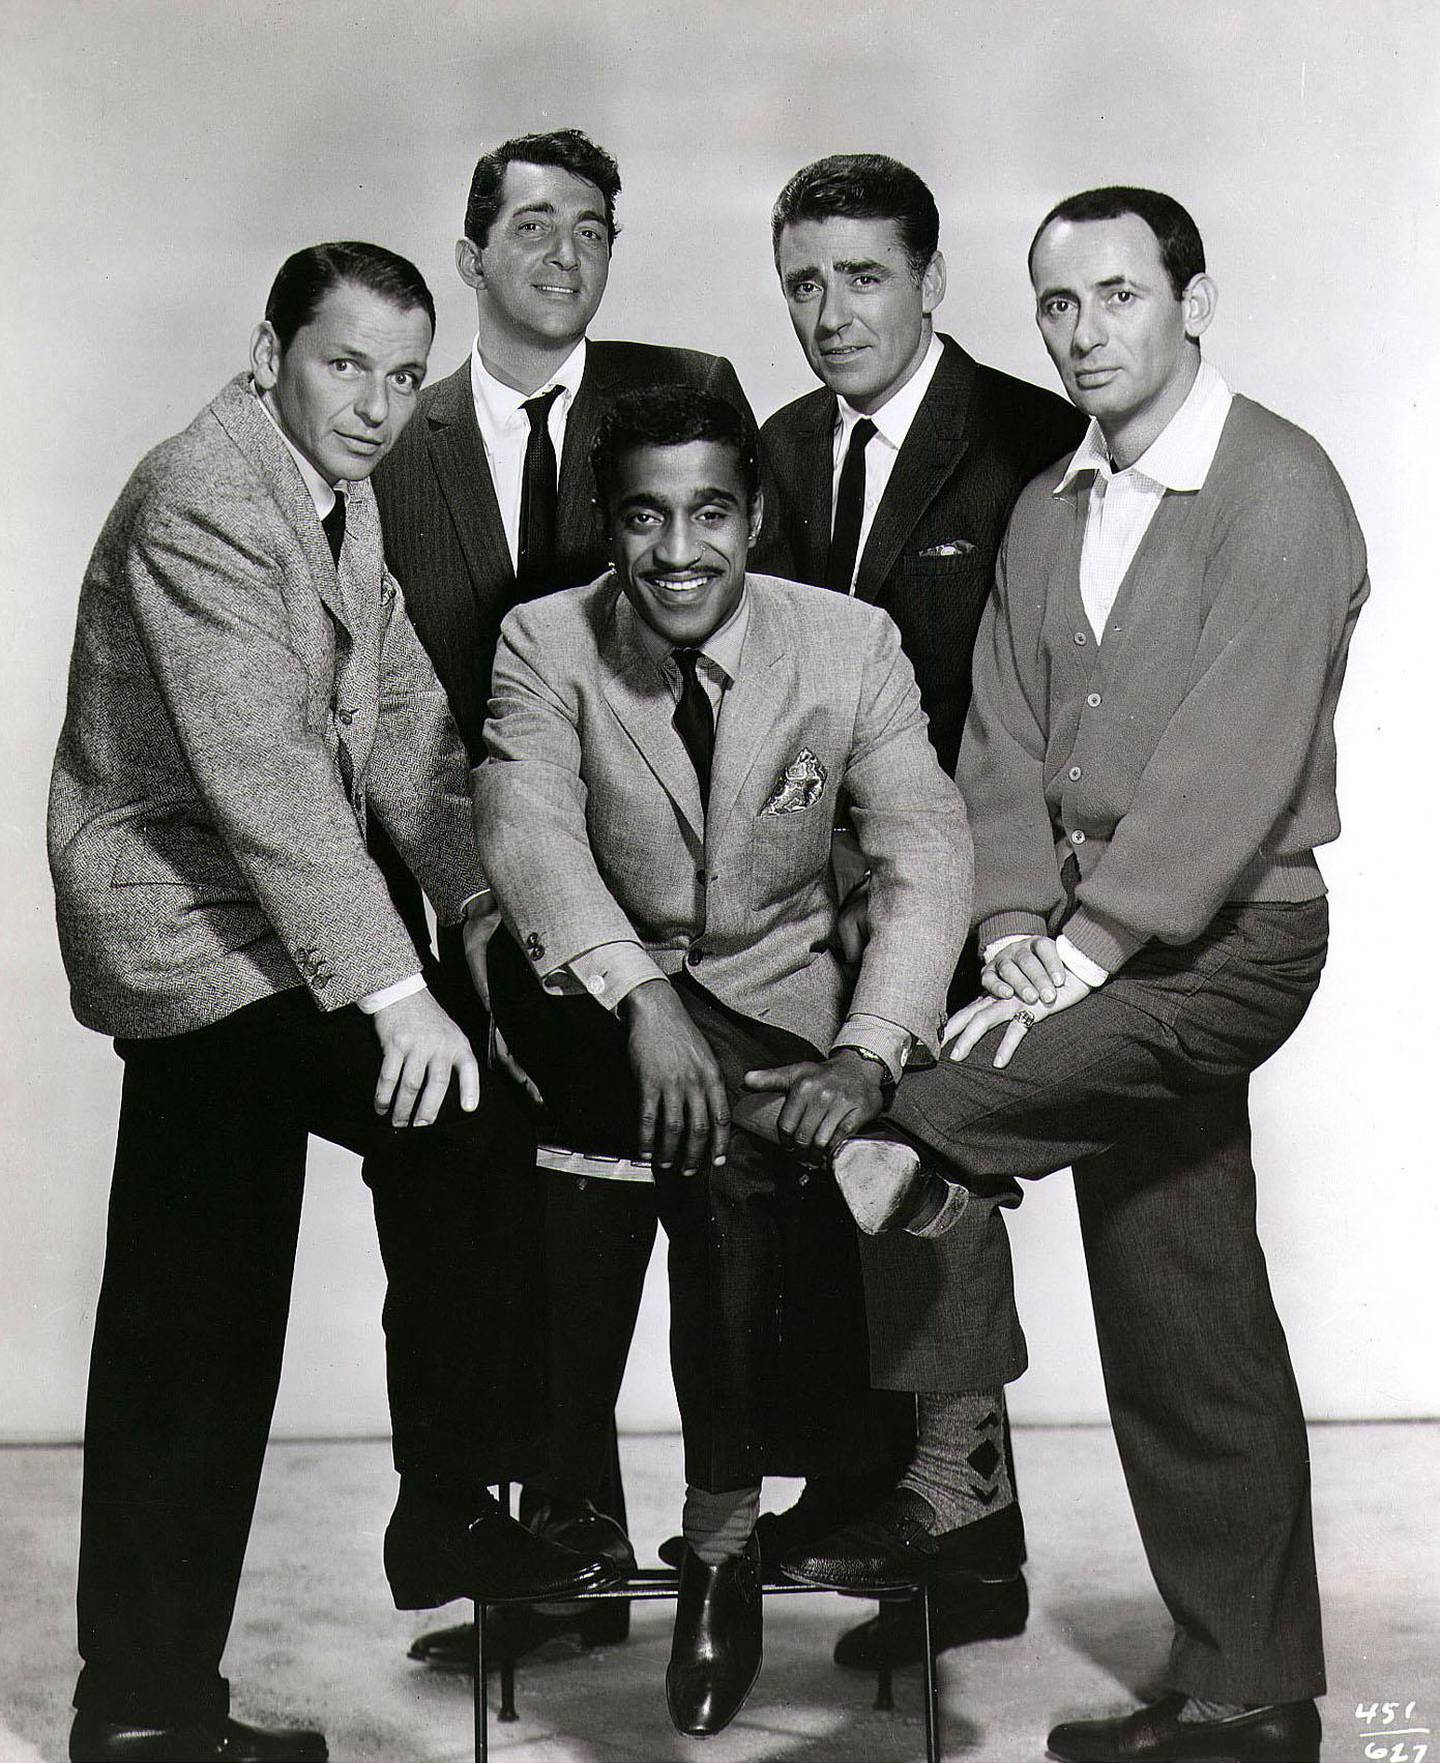 FILE PHOTO: An undated promotional photo of the ''Rat Pack'', (from left)Frank Sinatra, Dean Martin, Sammy Davis Jr., Peter Lawford and Joey Bishop. (photo by Newsmakers)